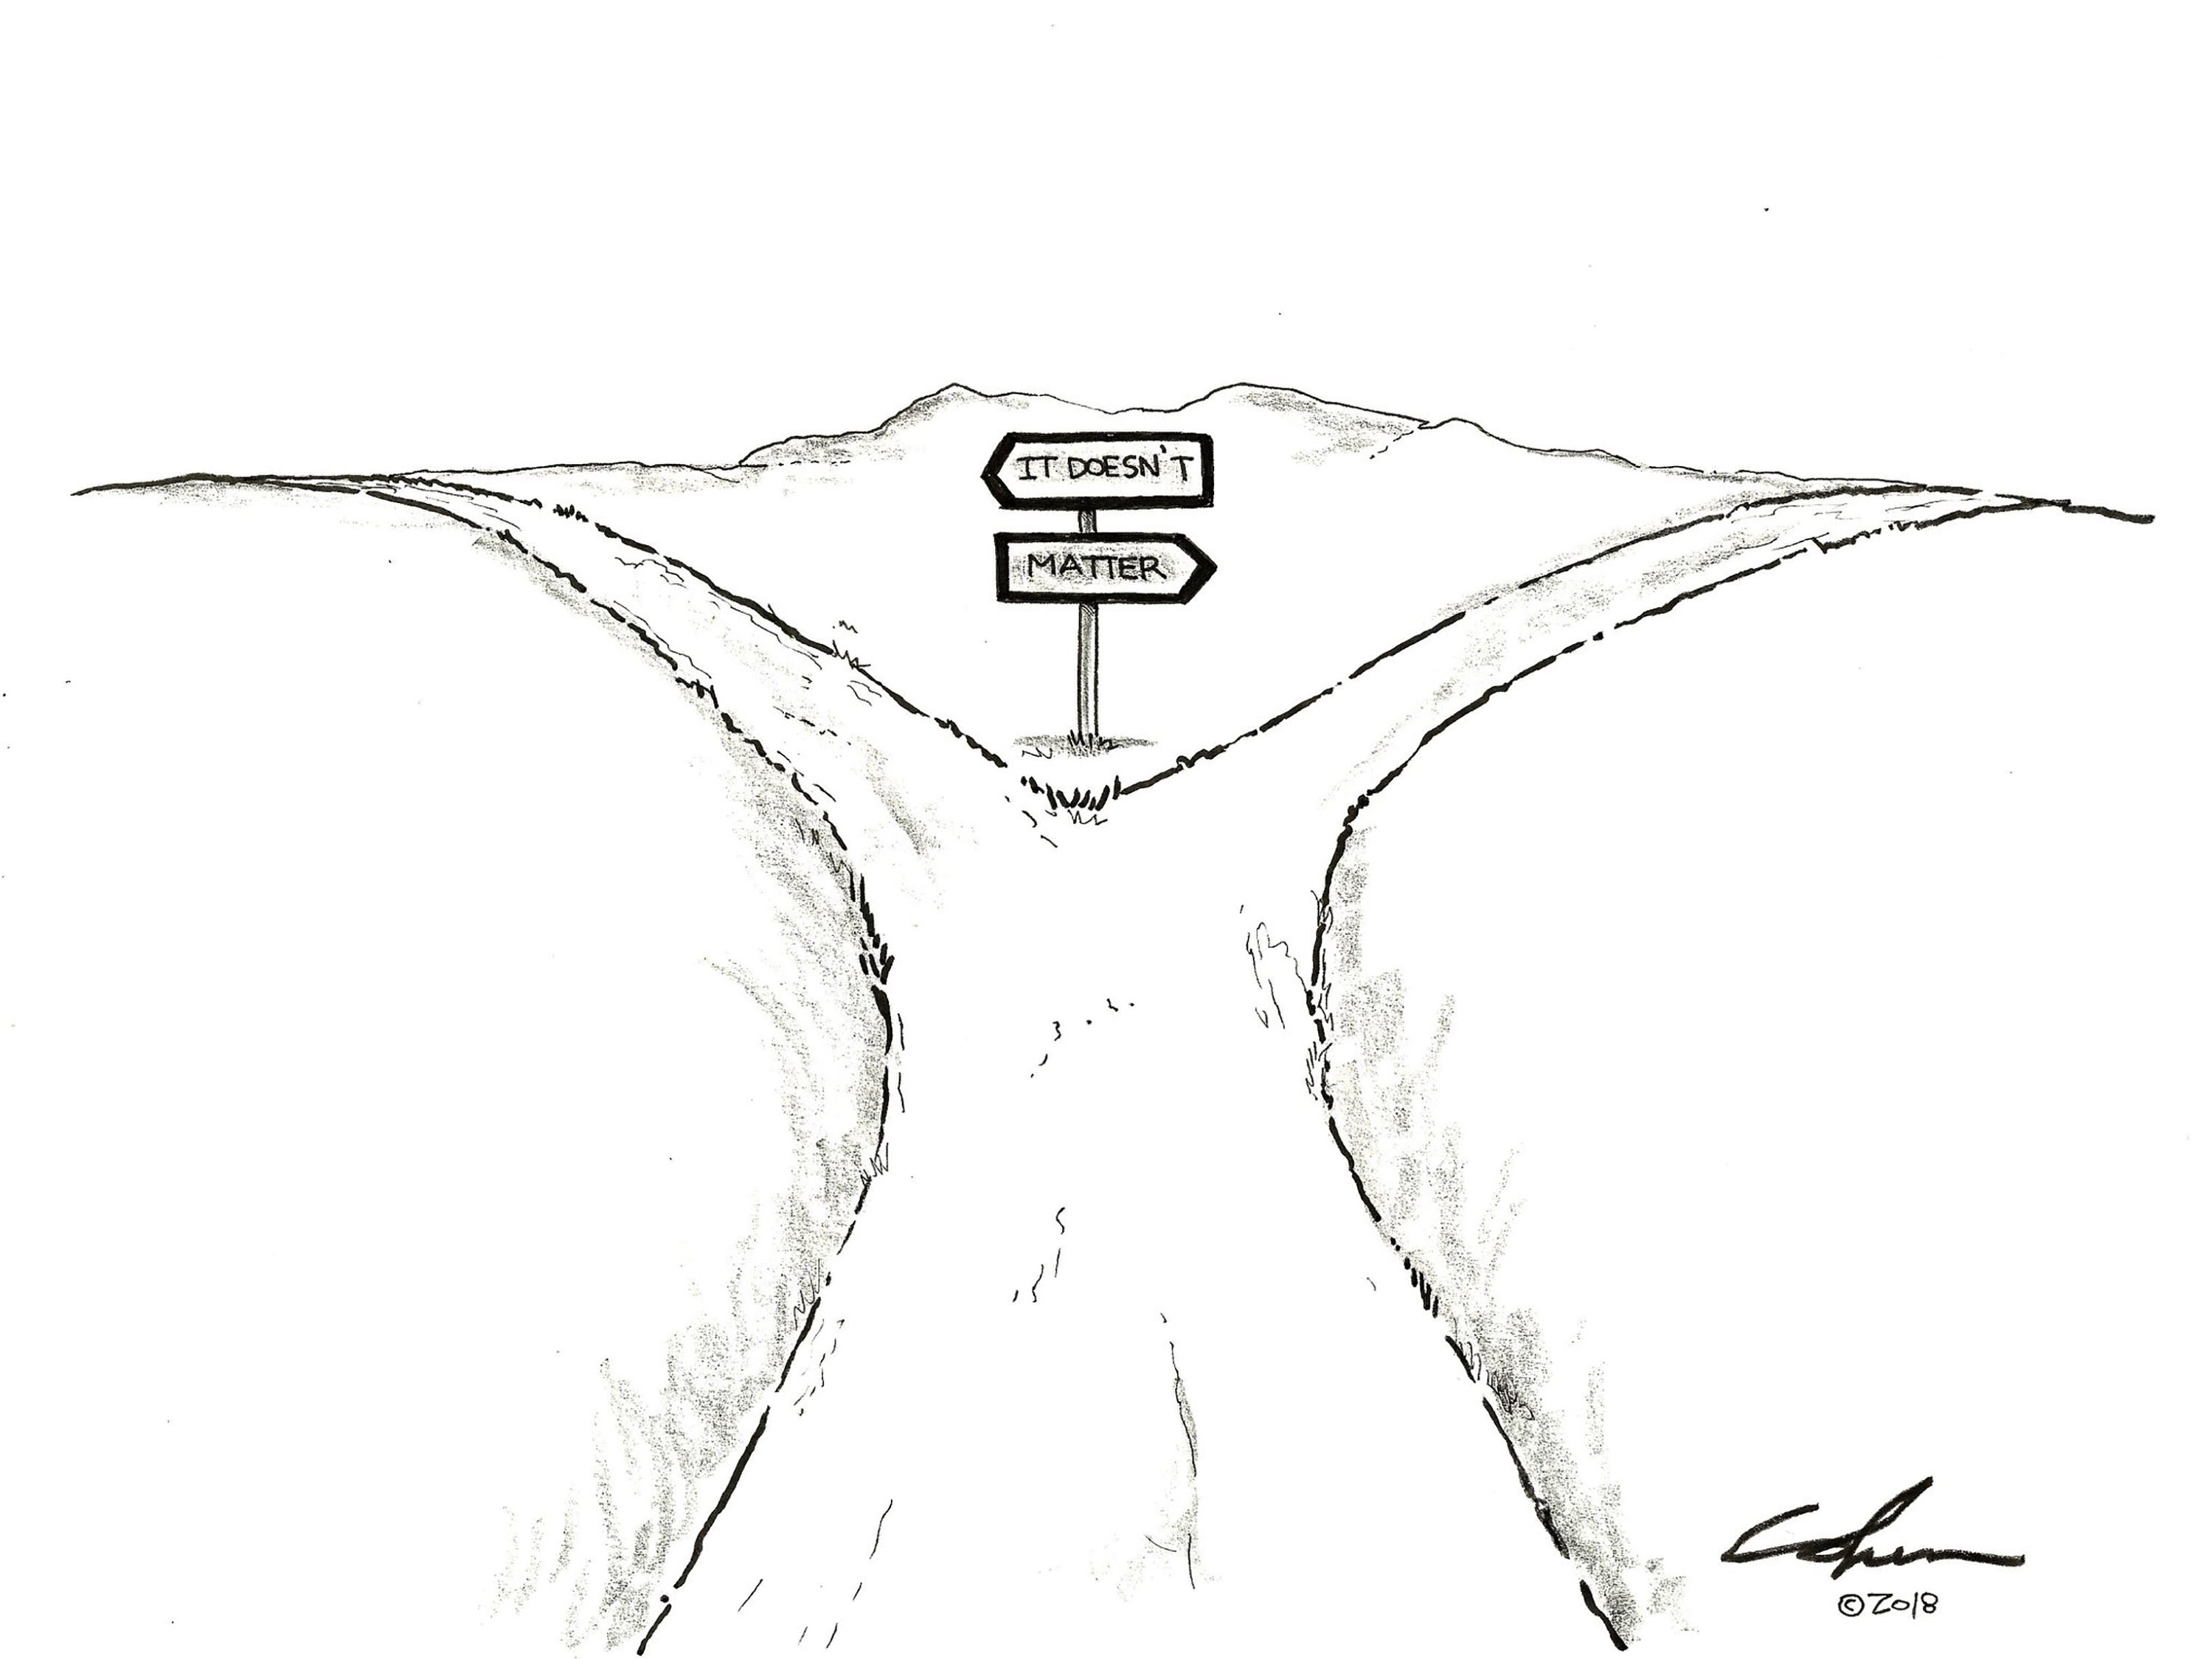 The cartoonist's homepage, citizen-times.com/voices-views